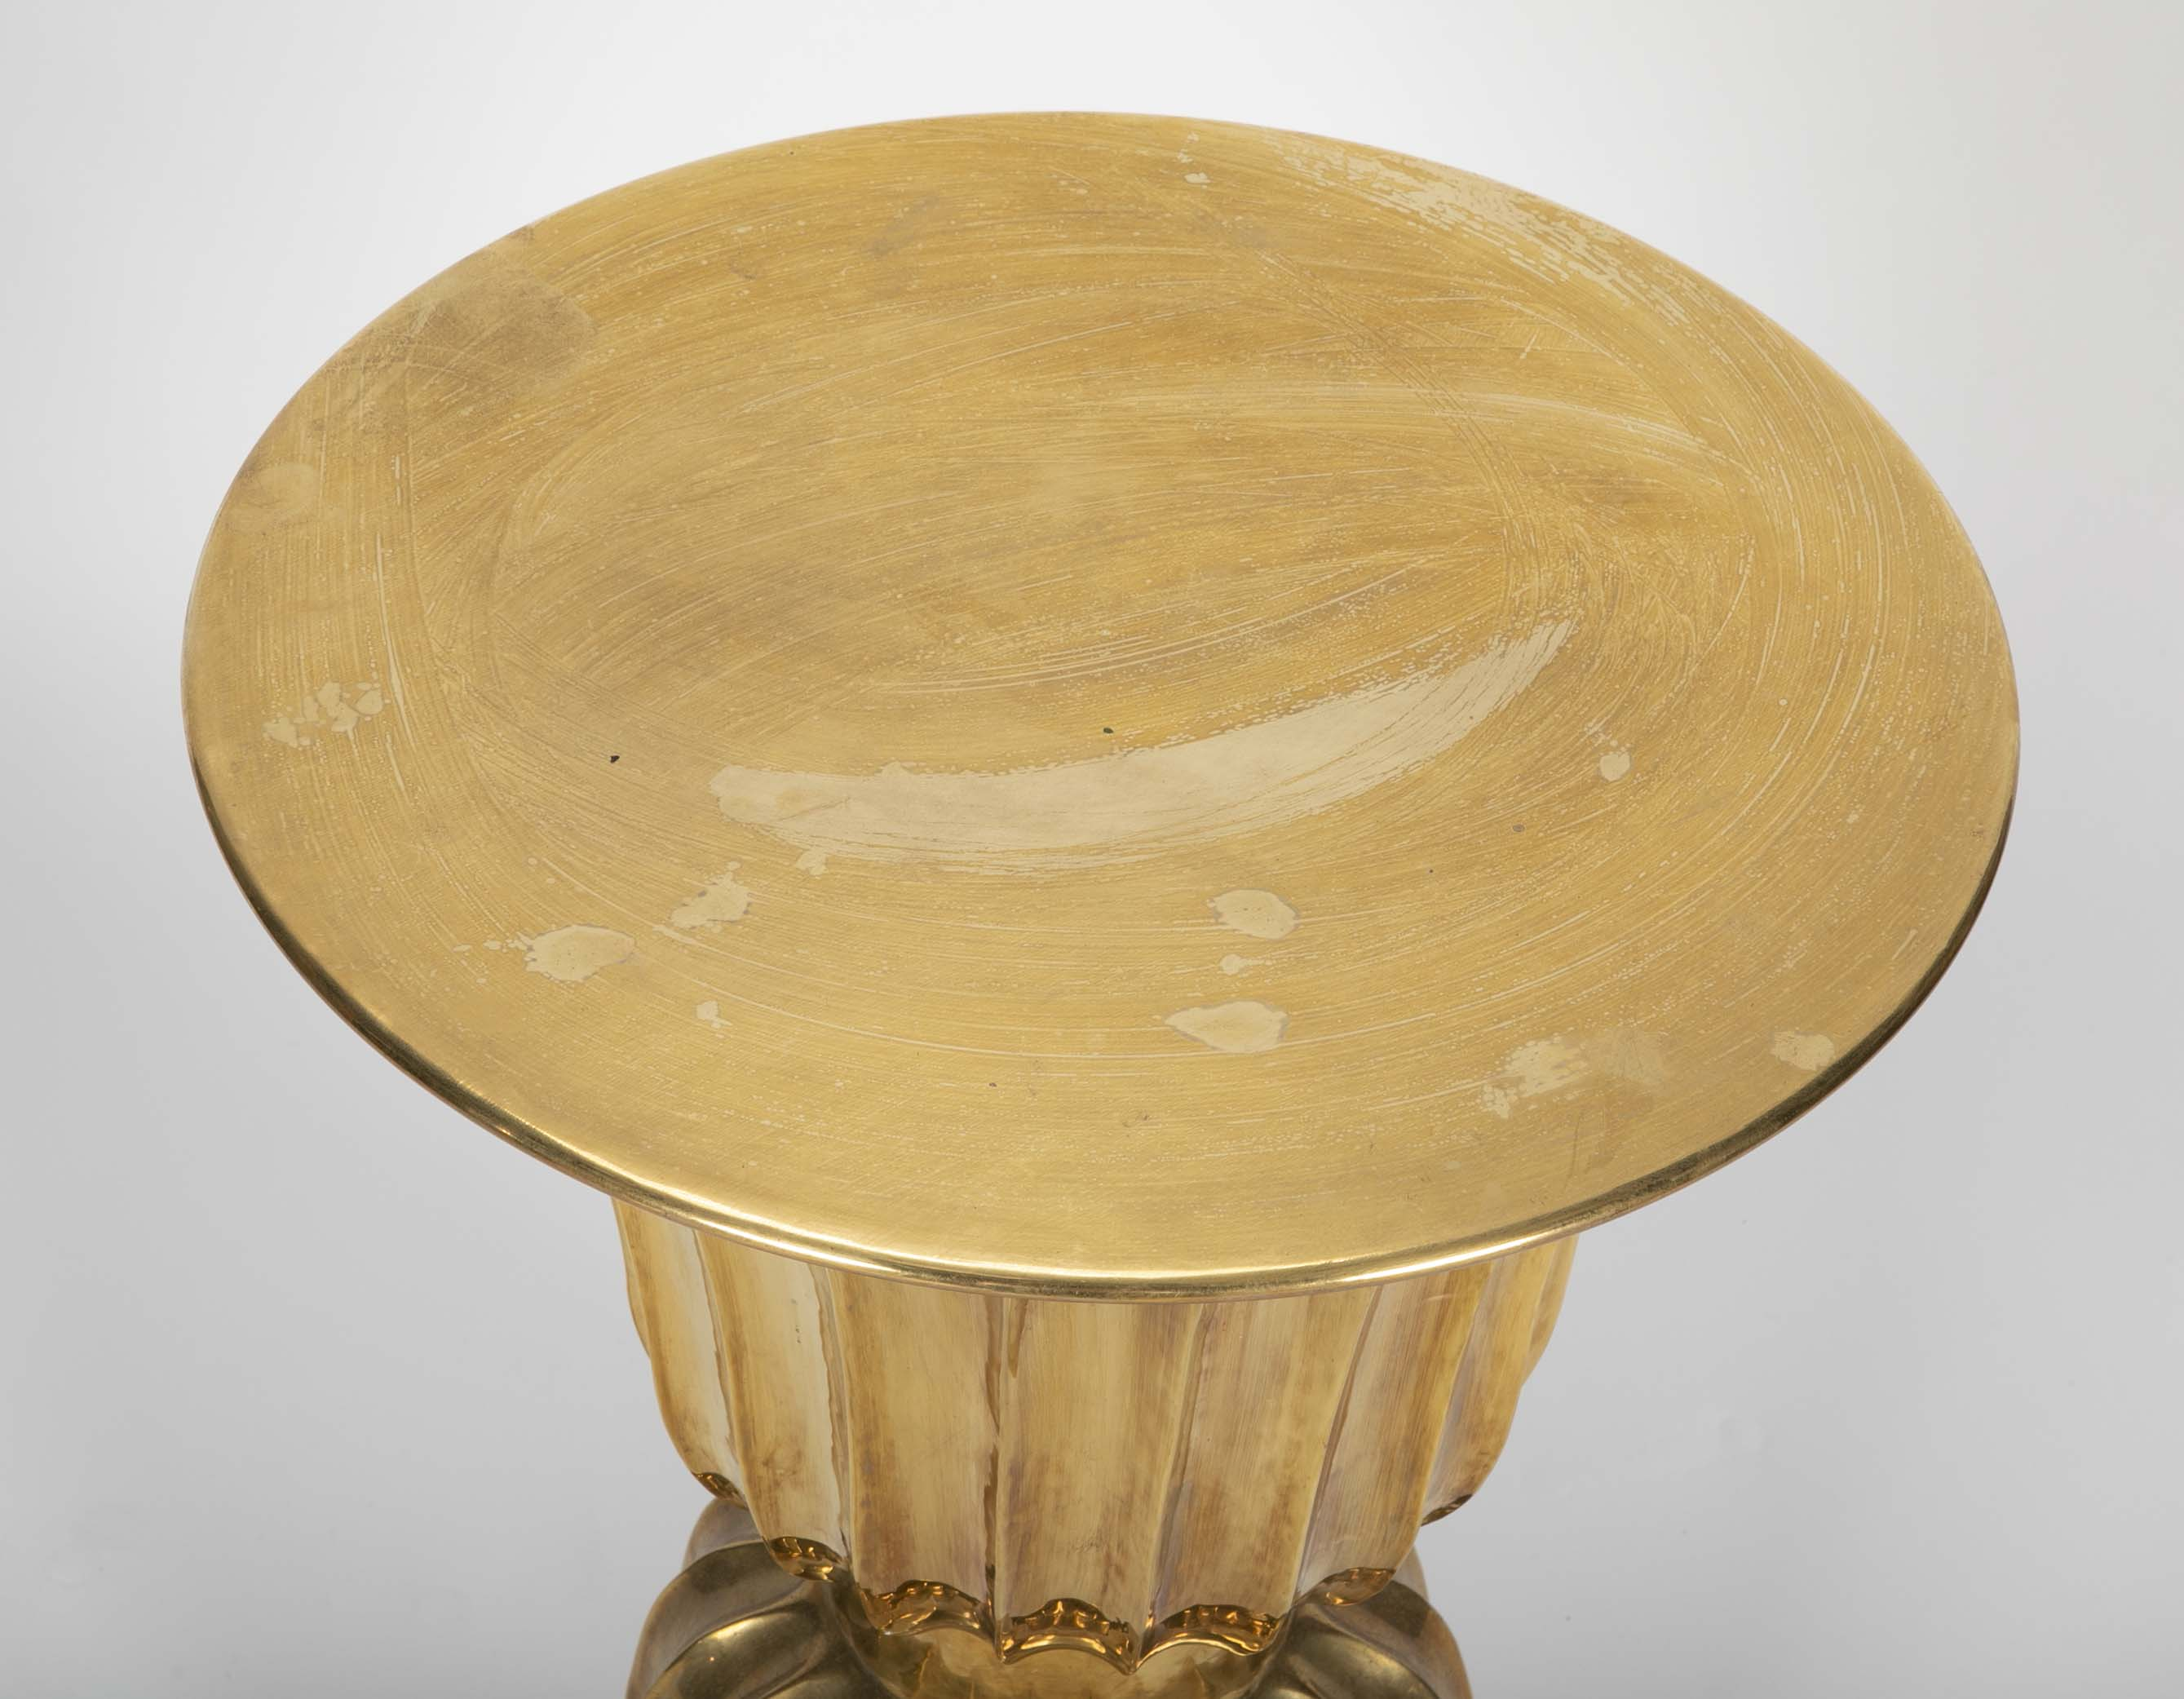 Brass Table in the Mughal Style